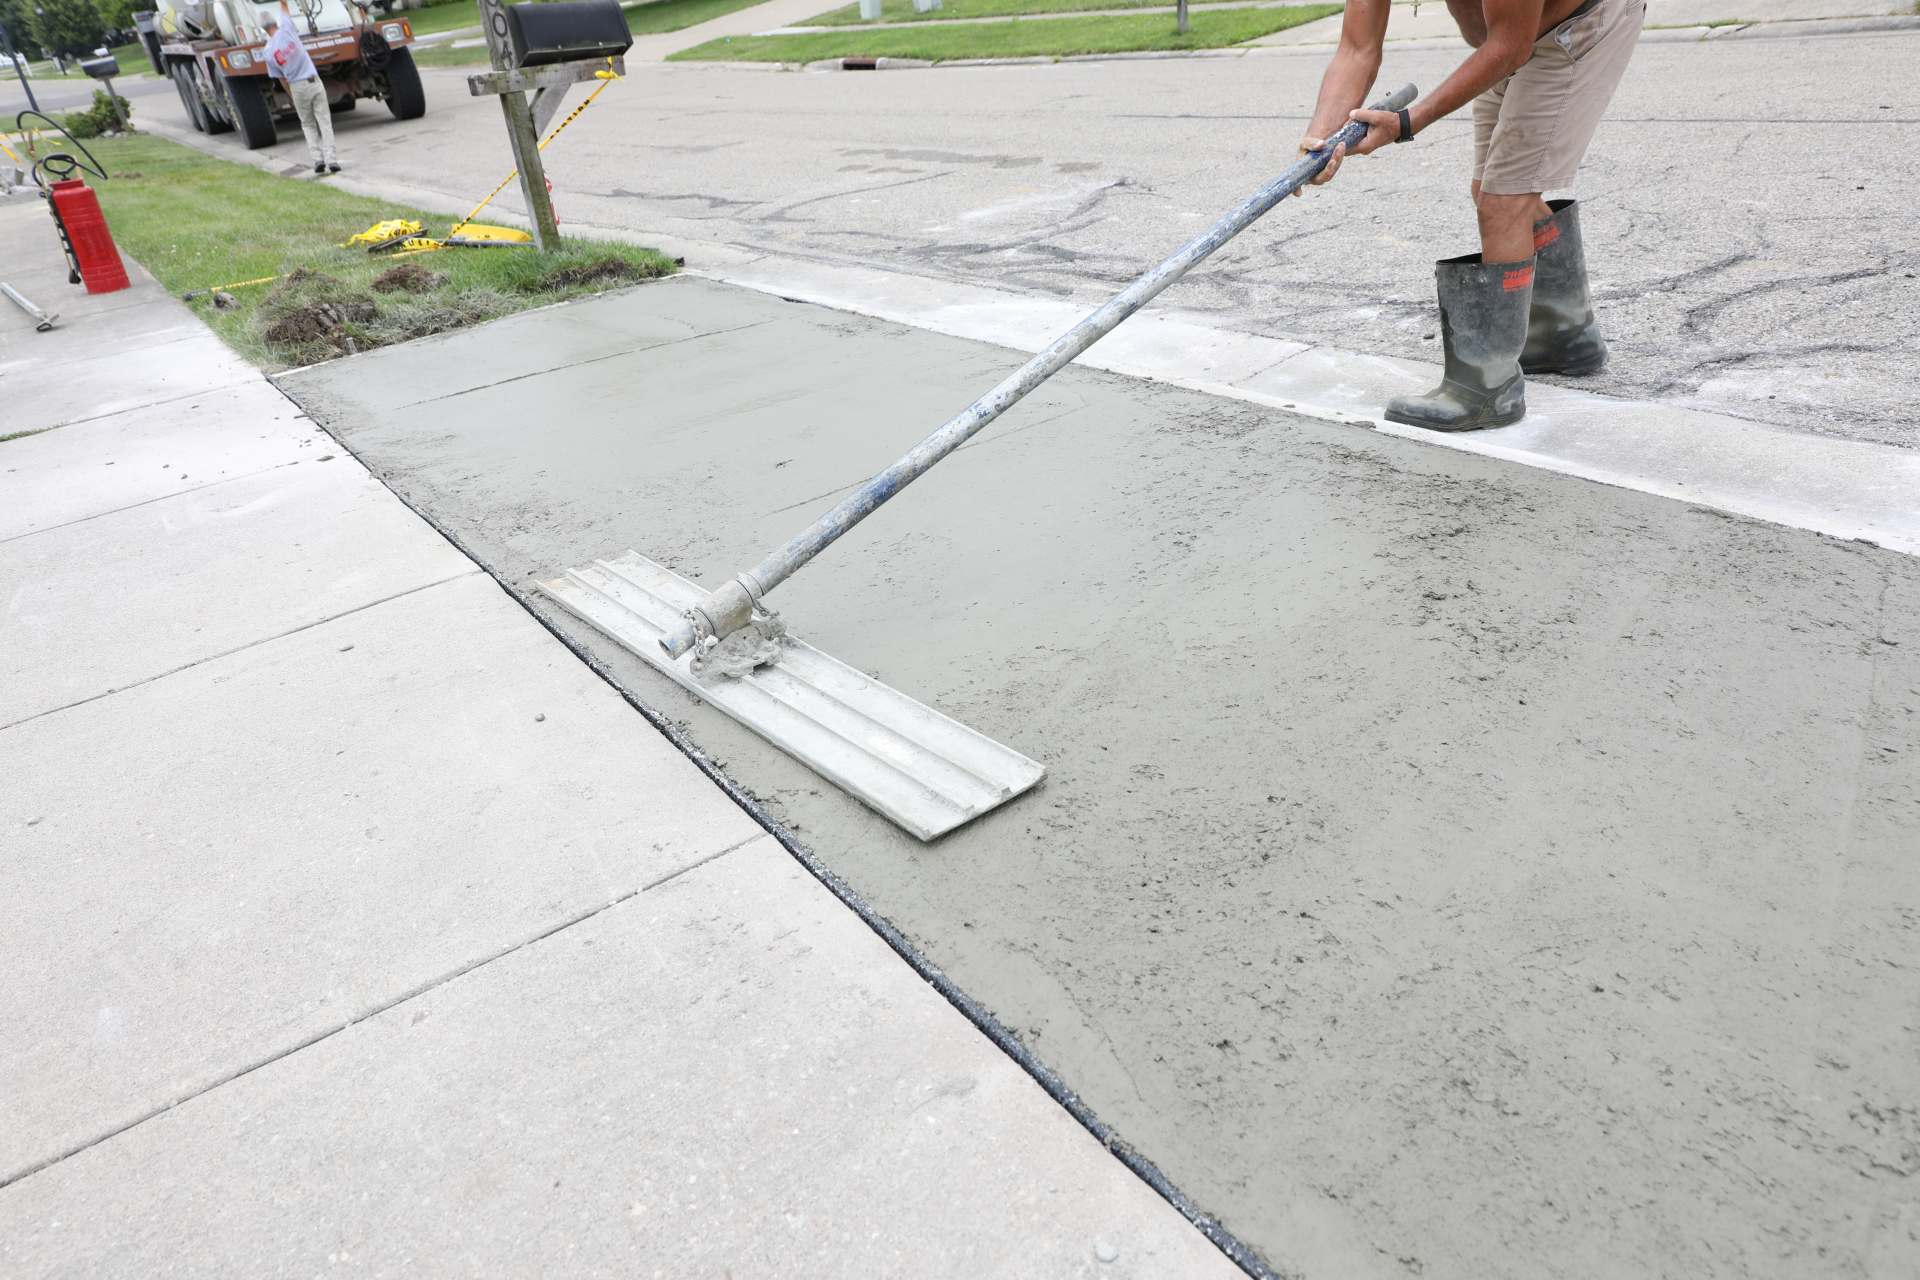 Concrete Work is Being Performed at a Home